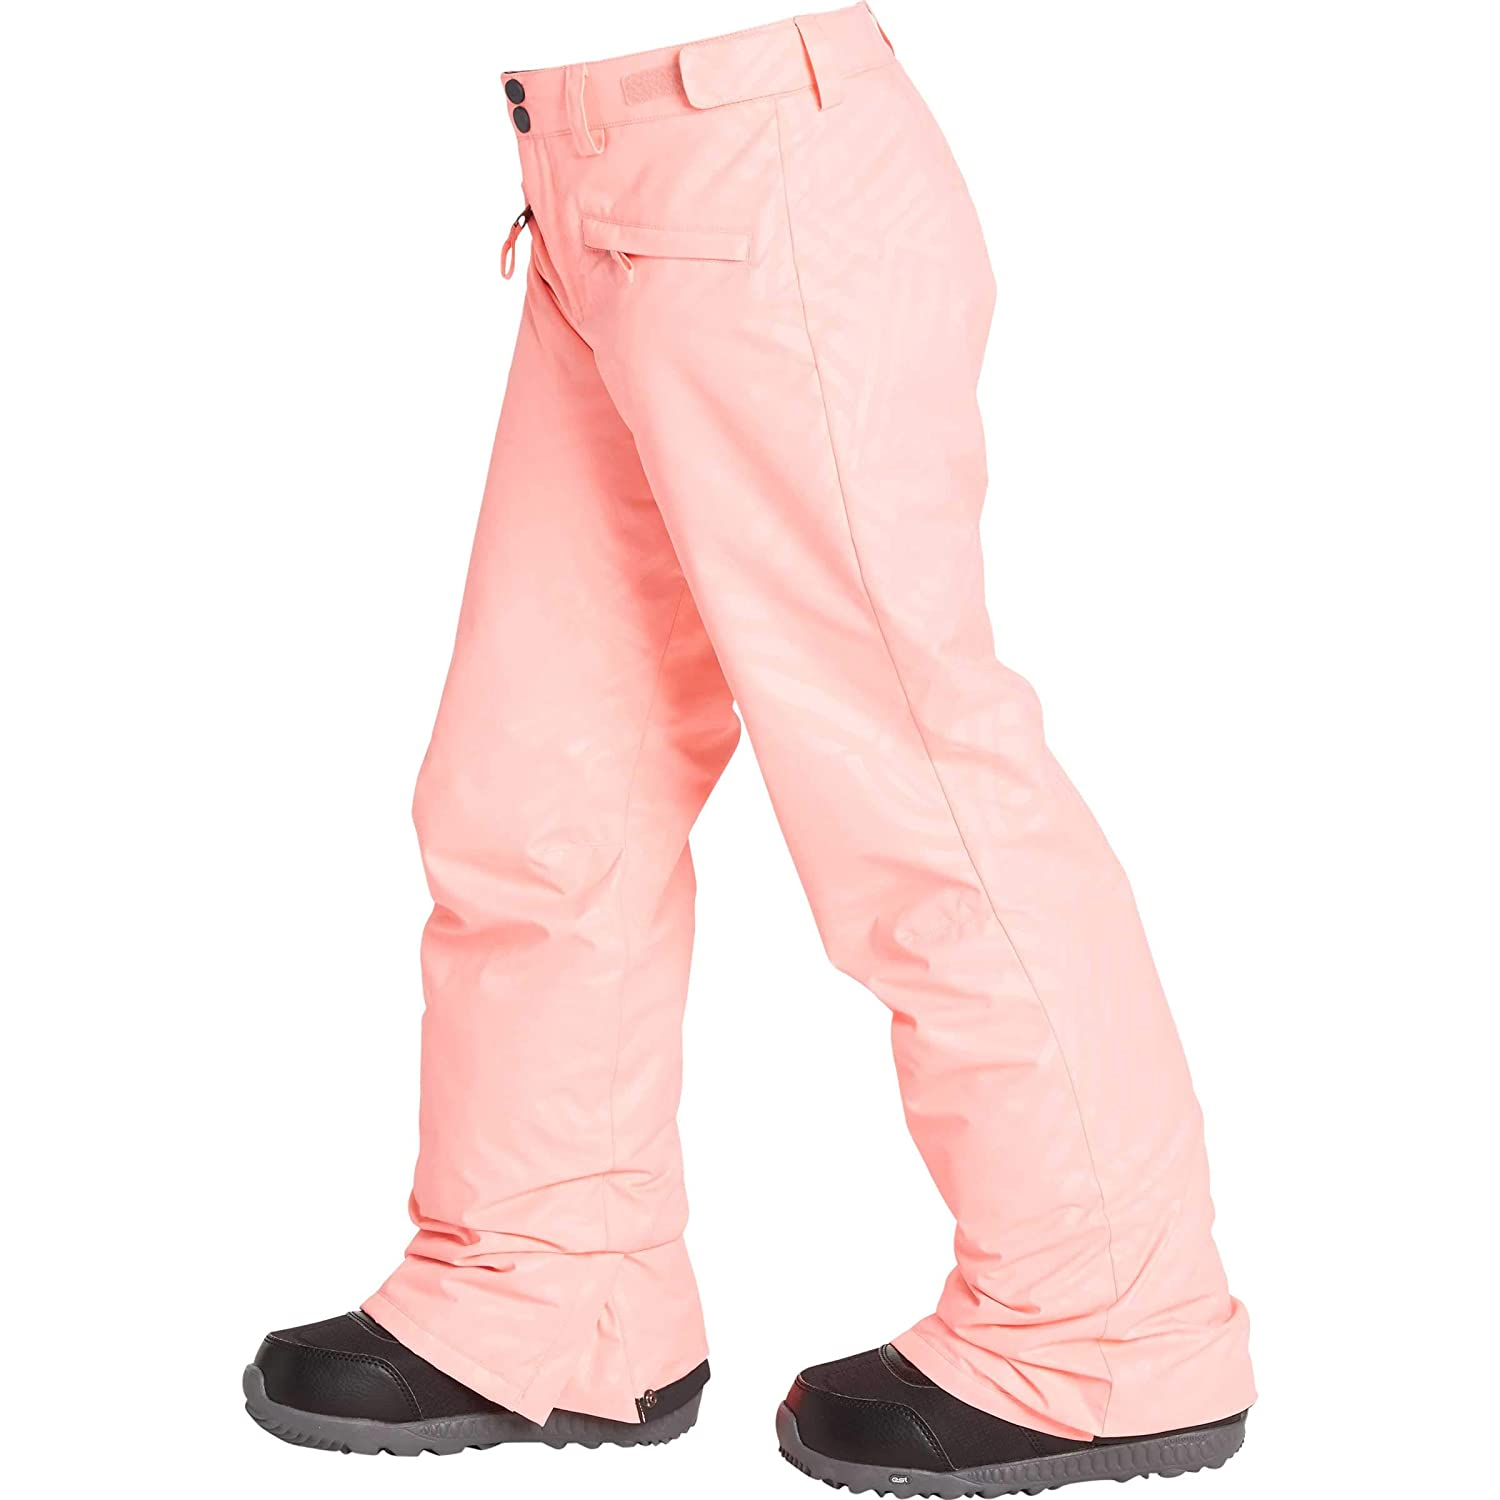 Billabong Big Alue Girls Insulated Snow Pant, Peach, L